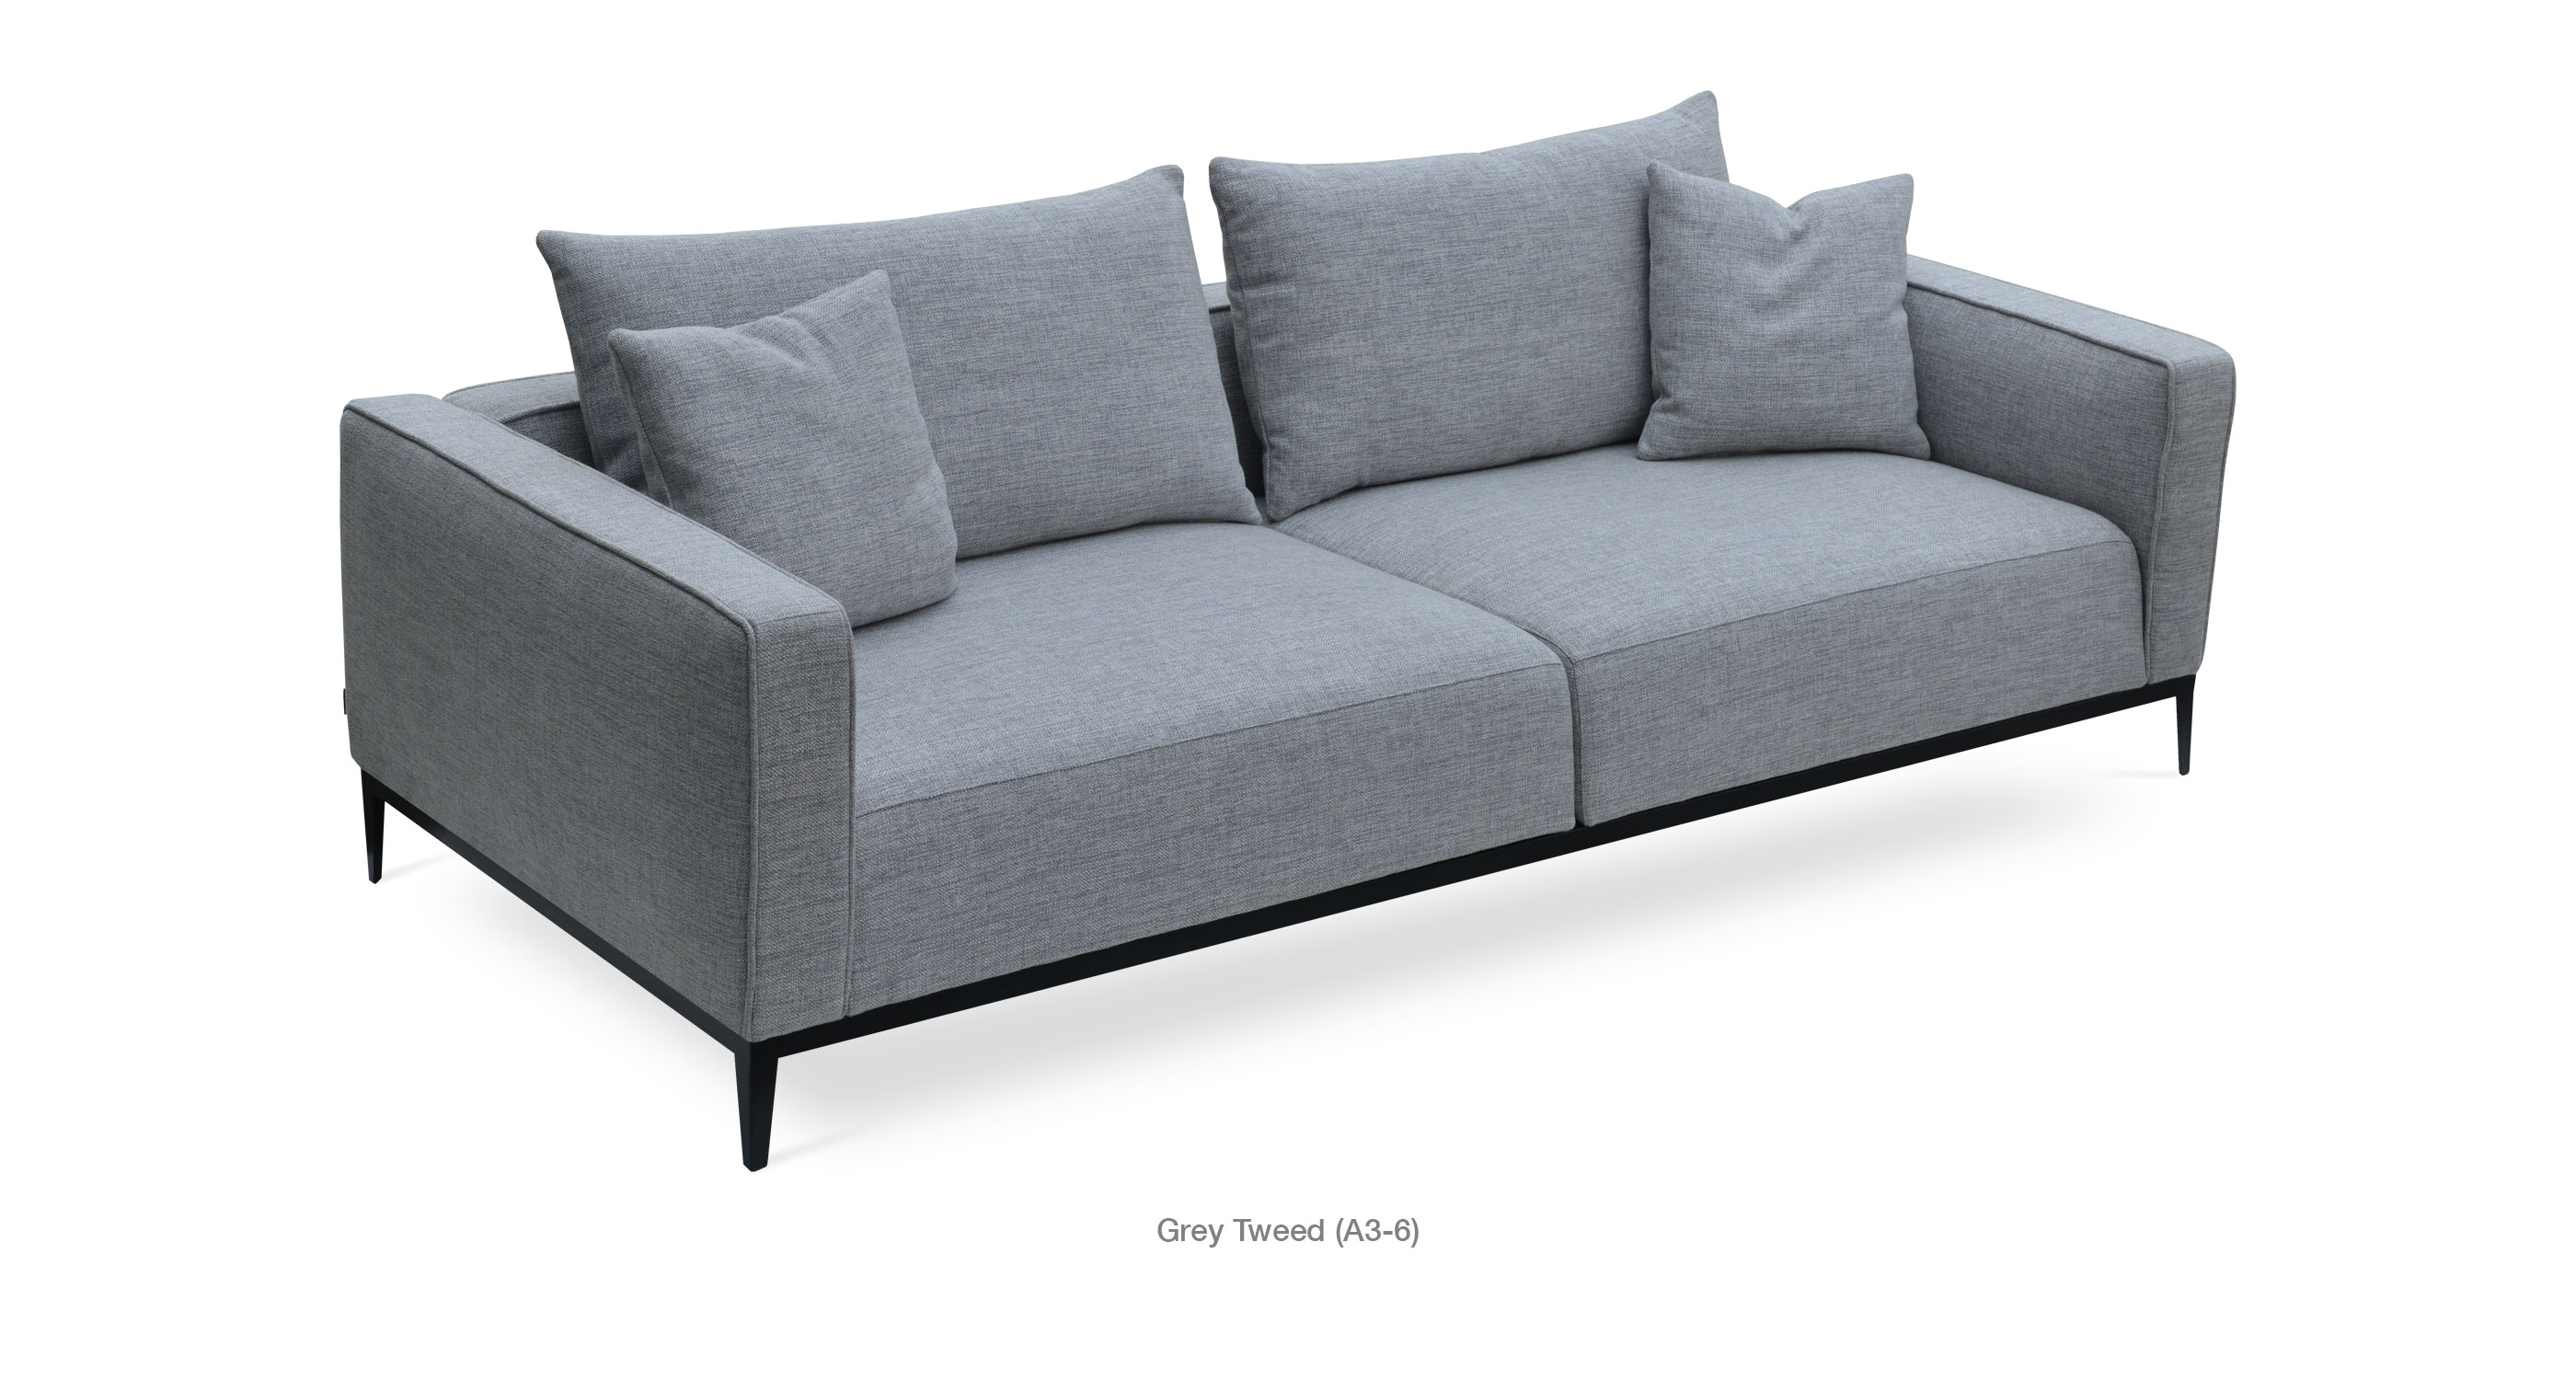 California sofa contemporary modern sofas sohoconcept for Grey tweed couch